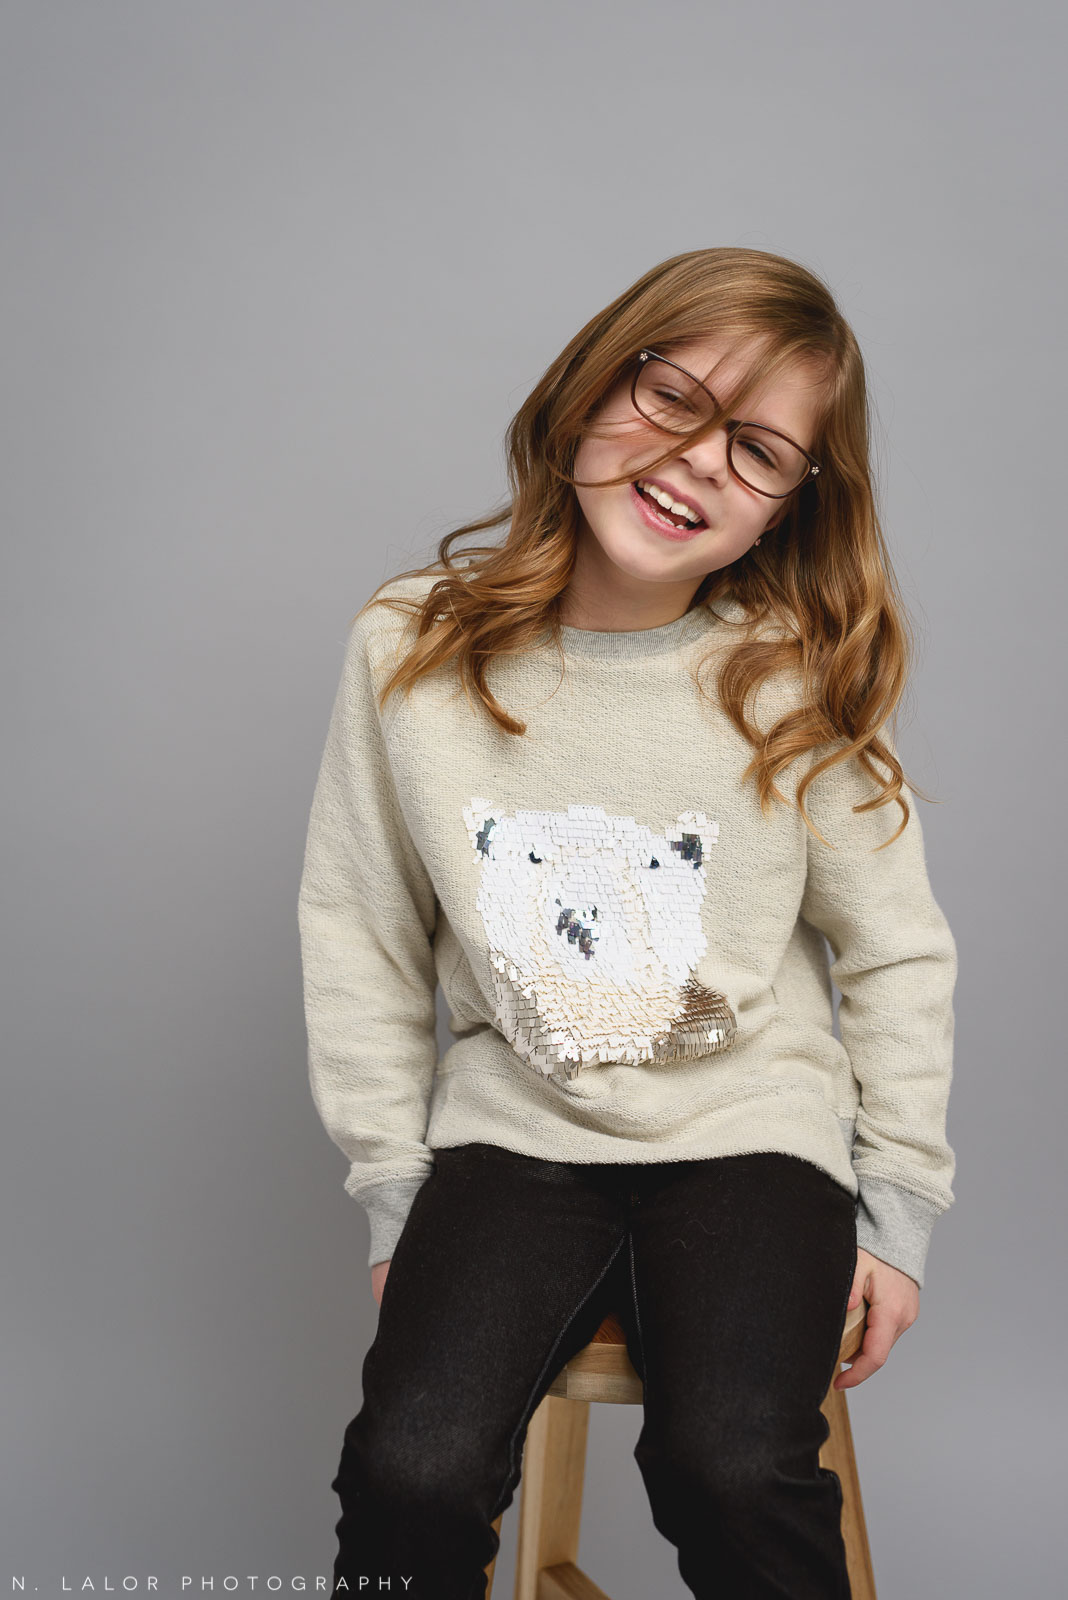 Her favorite sweater. Tween photo session with N. Lalor Photography. Studio located in Greenwich, Connecticut.